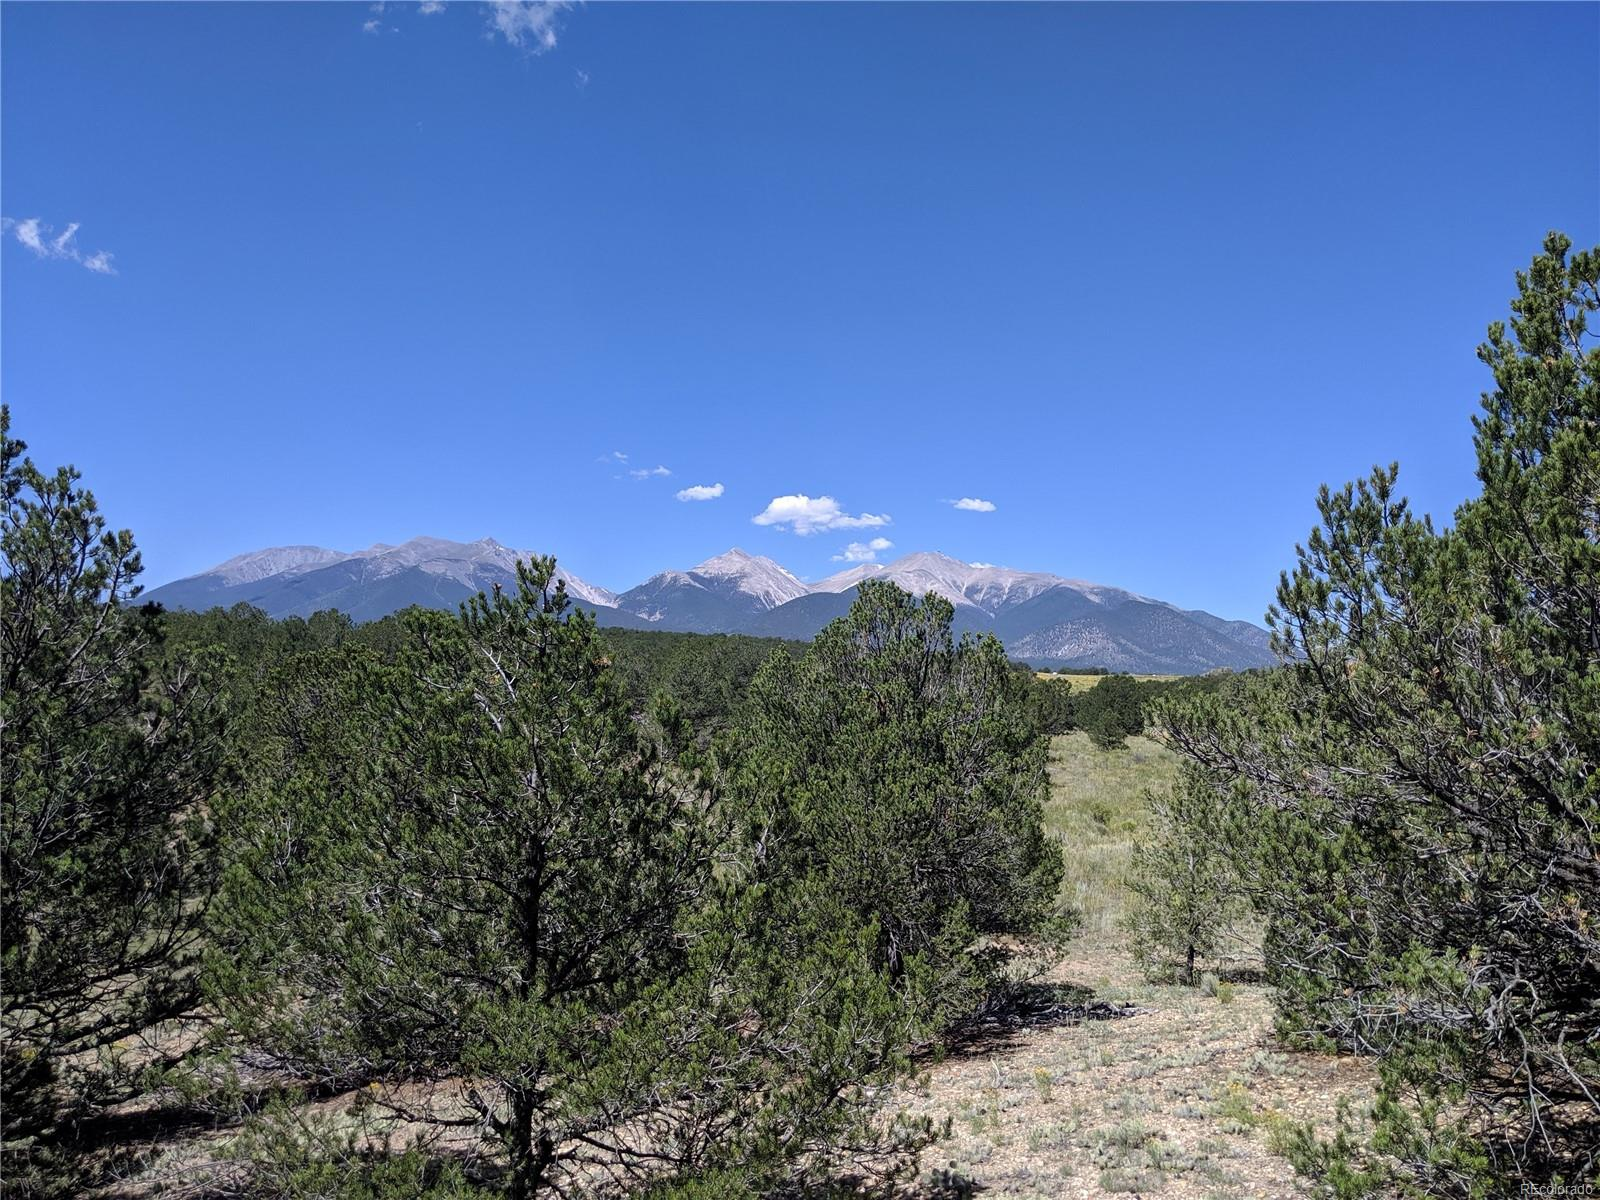 Lot 31, Nathrop, CO 81236 - Nathrop, CO real estate listing